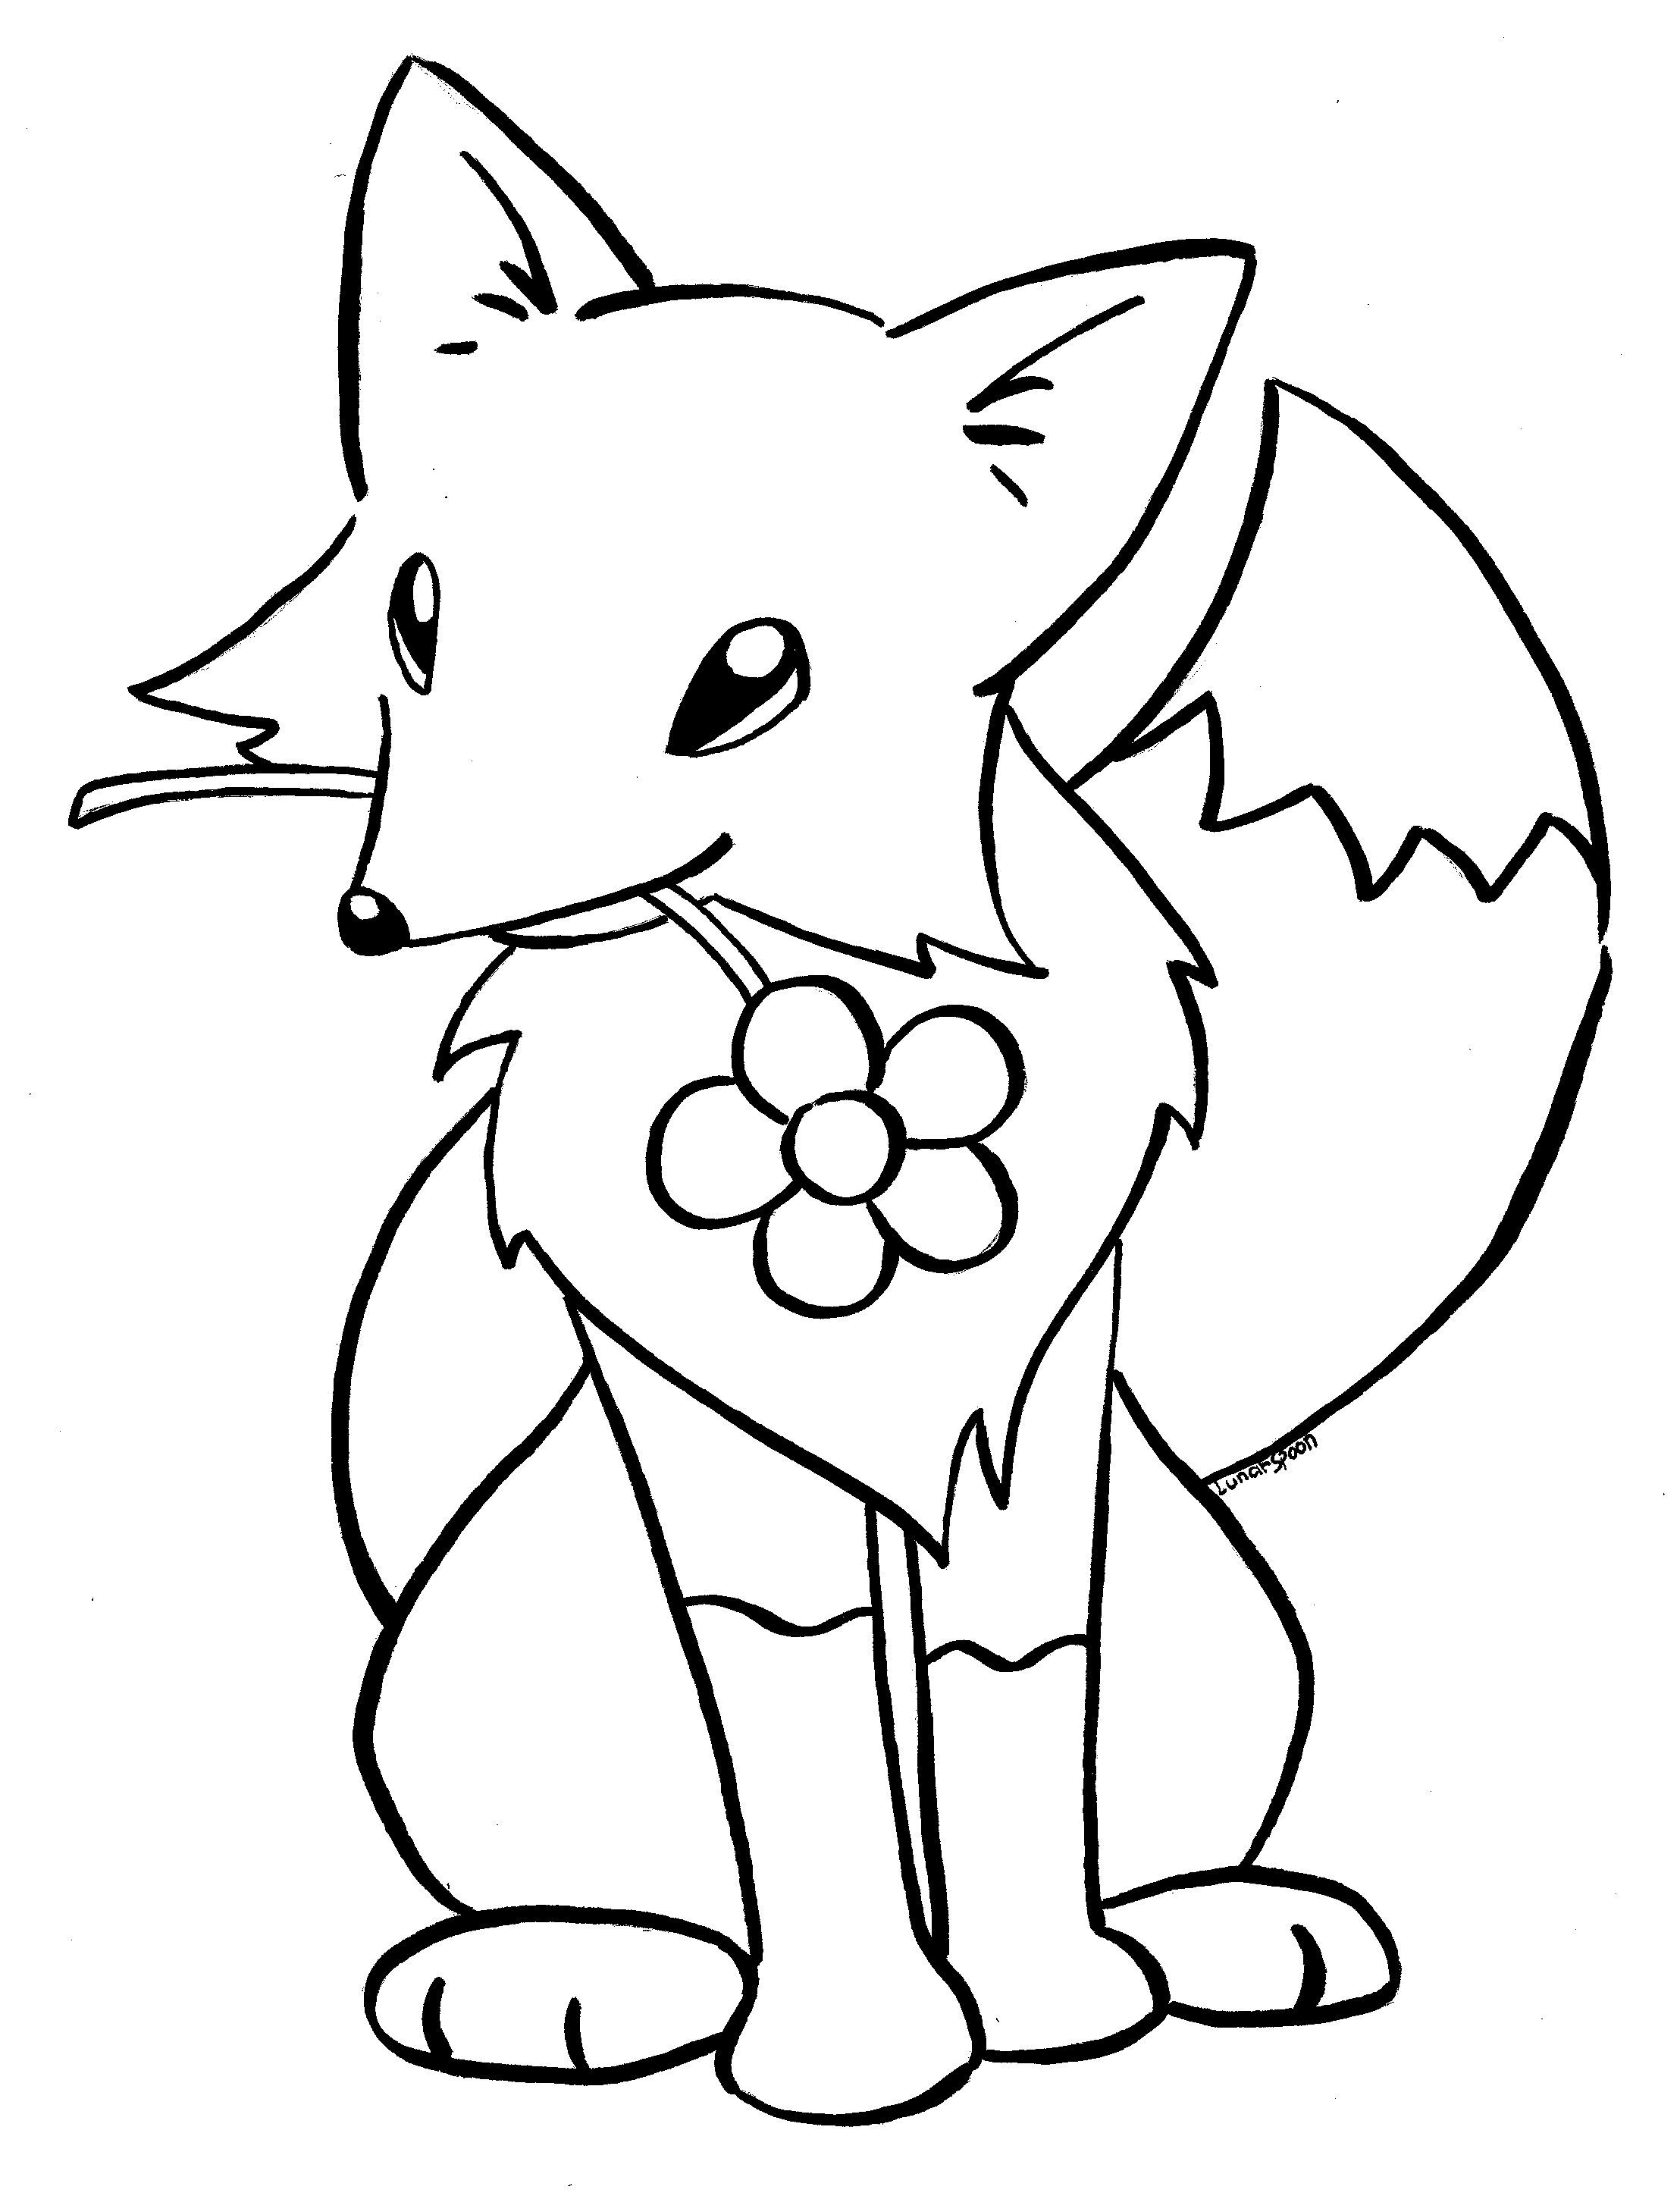 Image Result For Fox Coloring Pages For Kids Printable Fox Coloring Page Puppy Coloring Pages Cute Coloring Pages